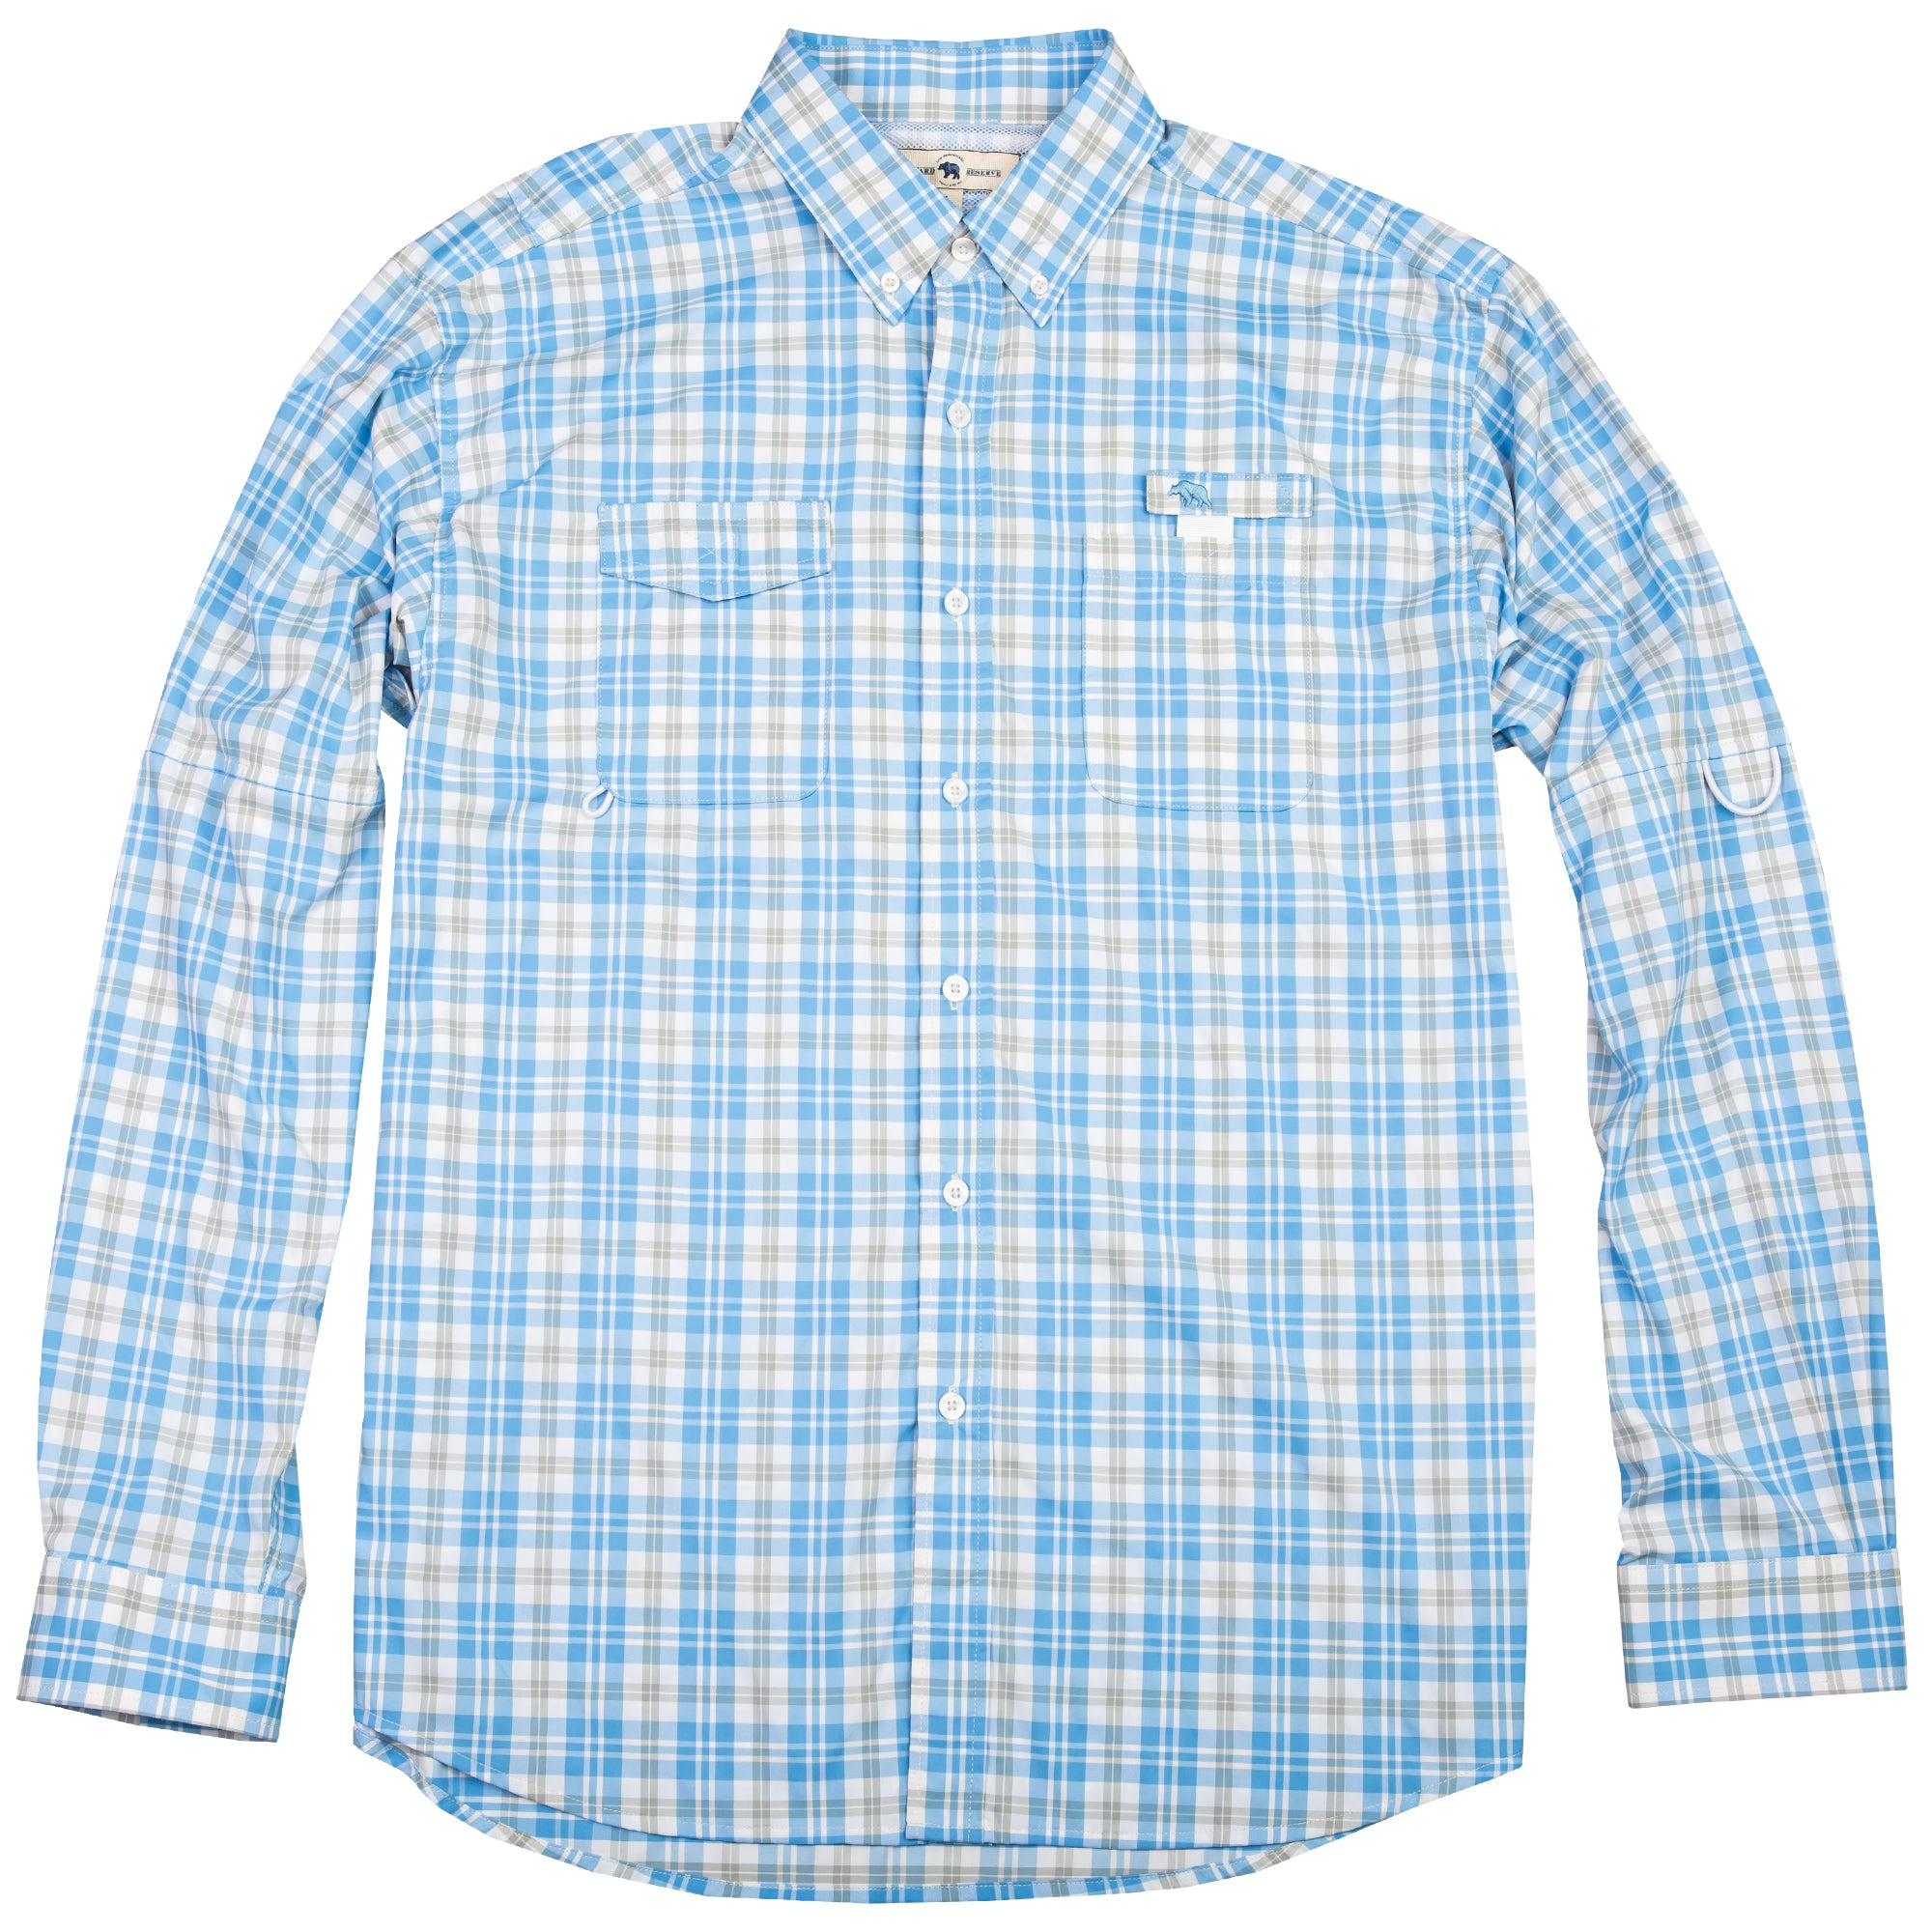 Performance Fishing Shirt - Blue Plaid - OnwardReserve